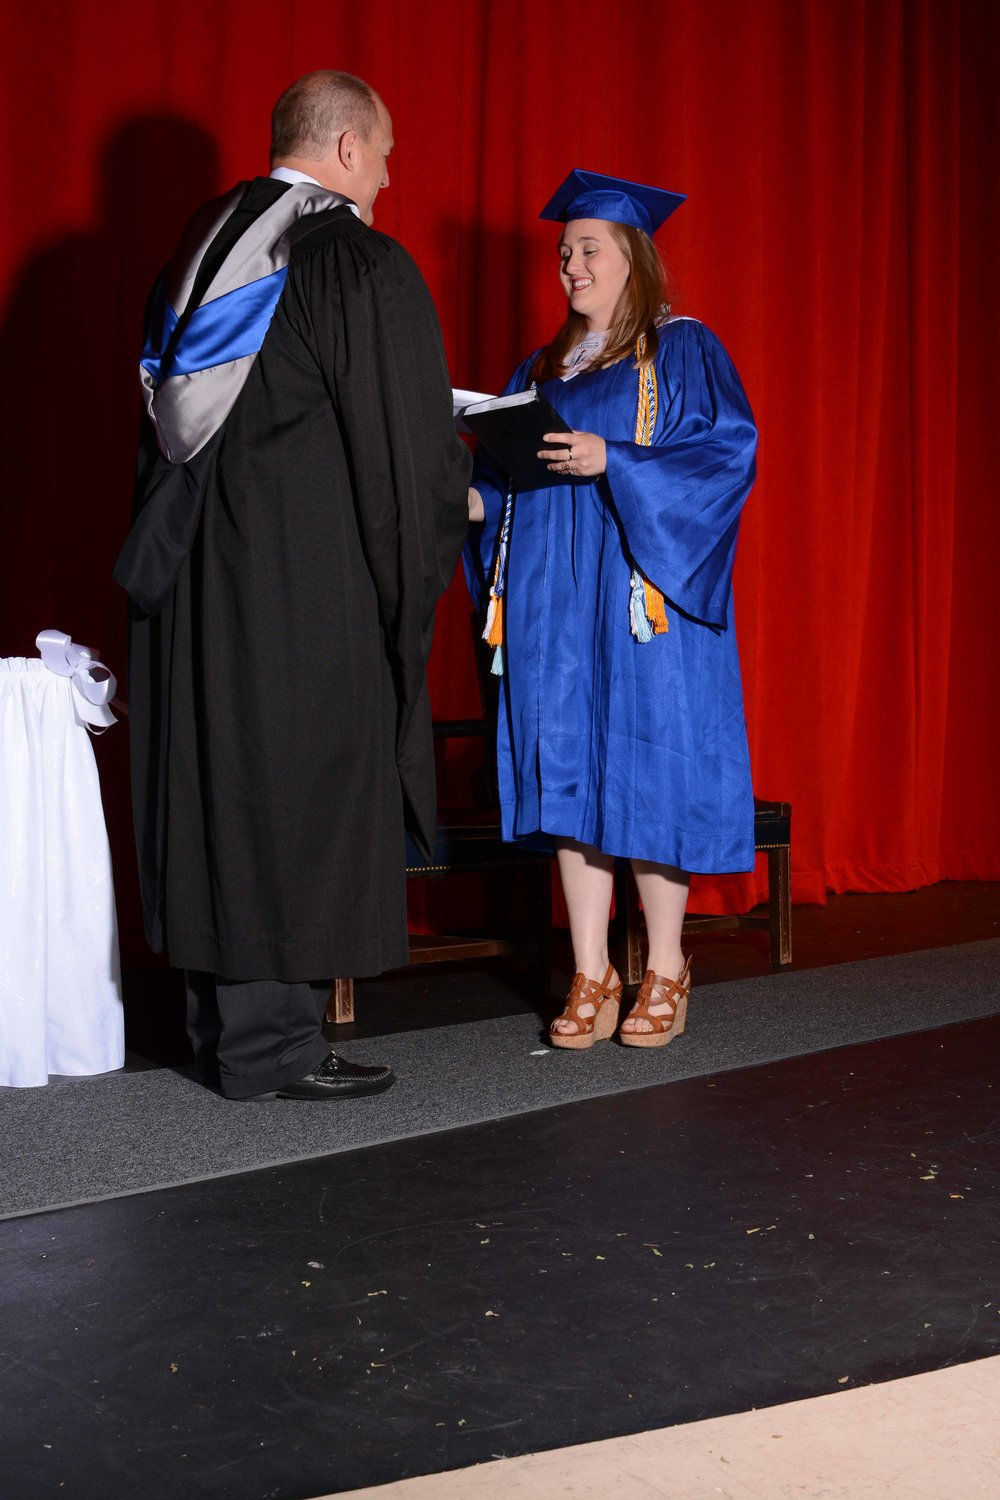 May15 HardingGraduation01.jpg